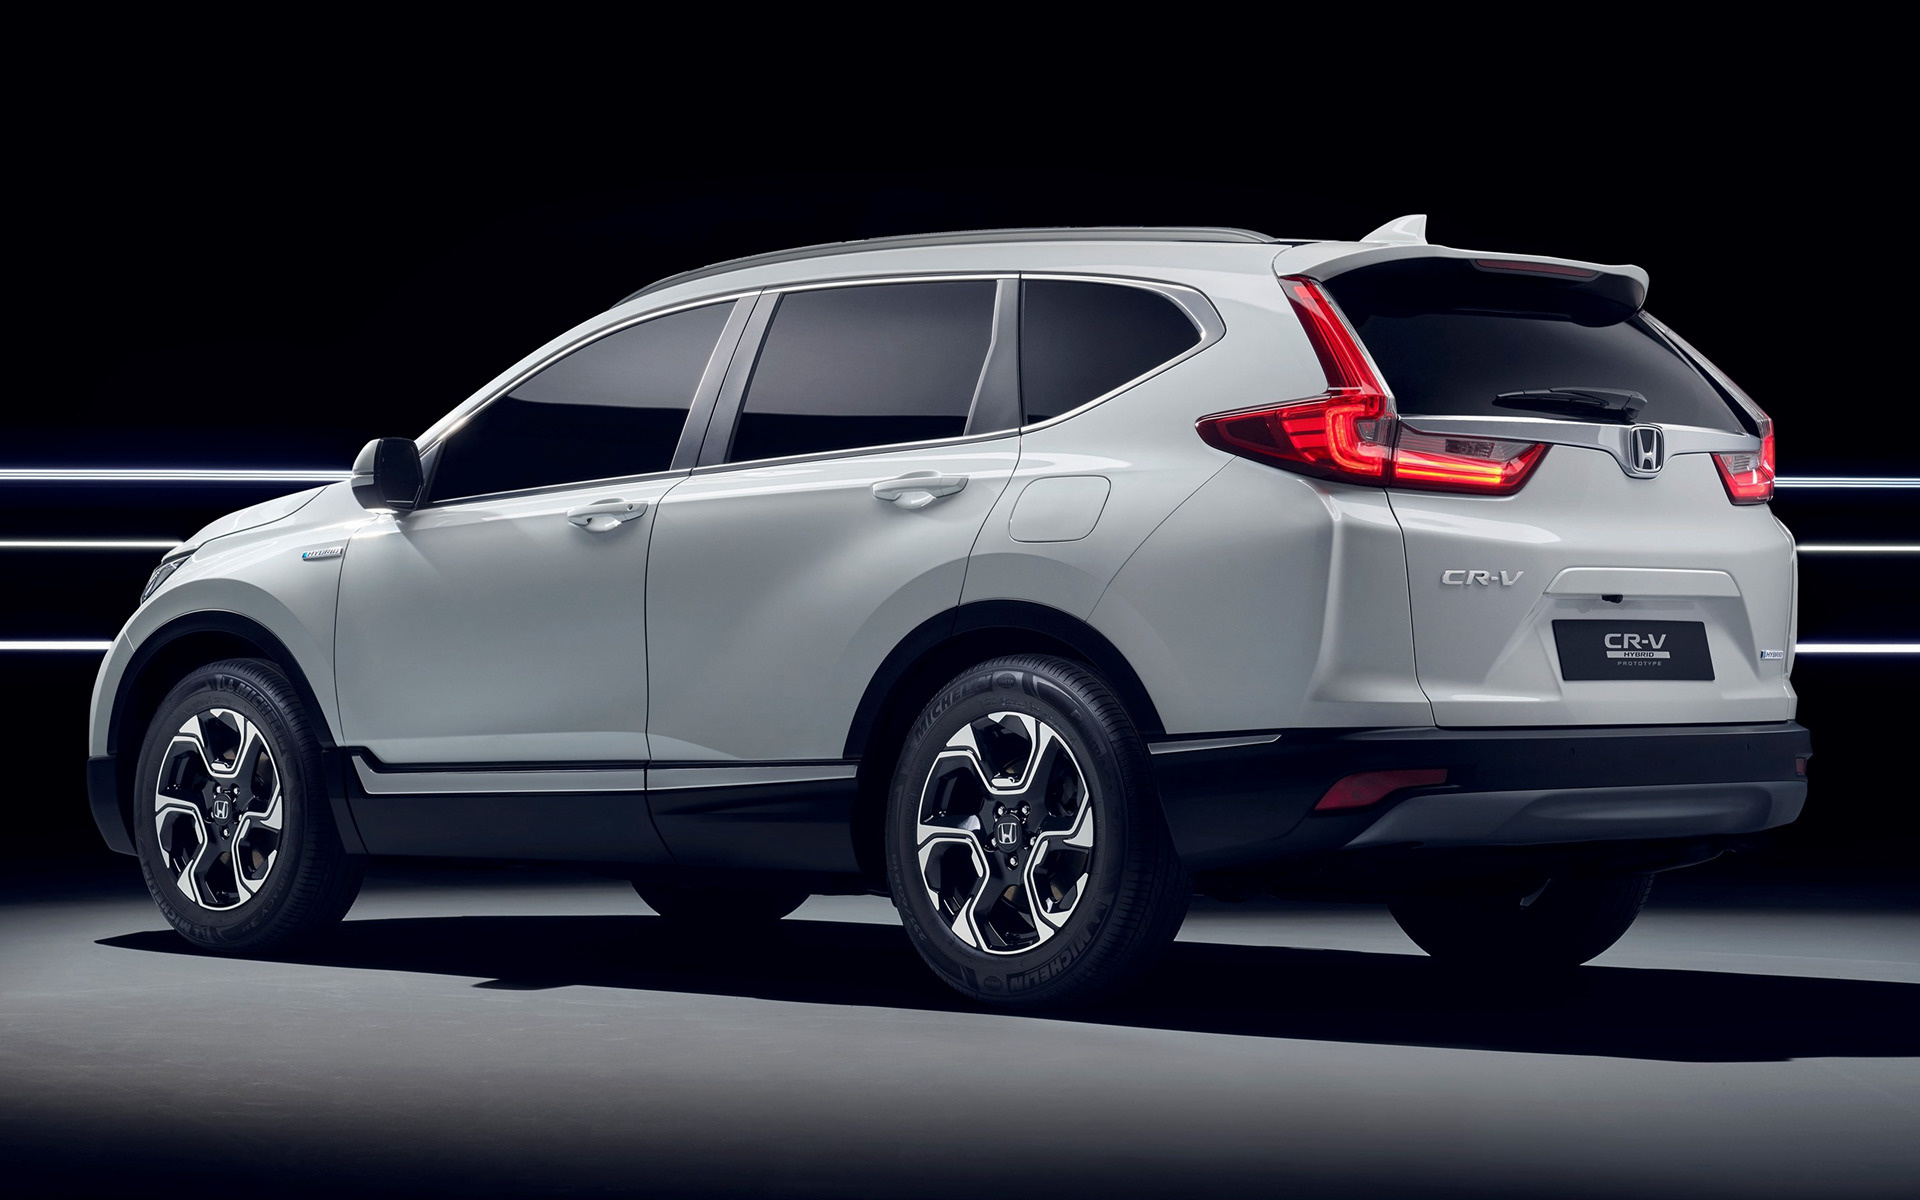 2017 Honda Cr V Hybrid Prototype Wallpapers And Hd